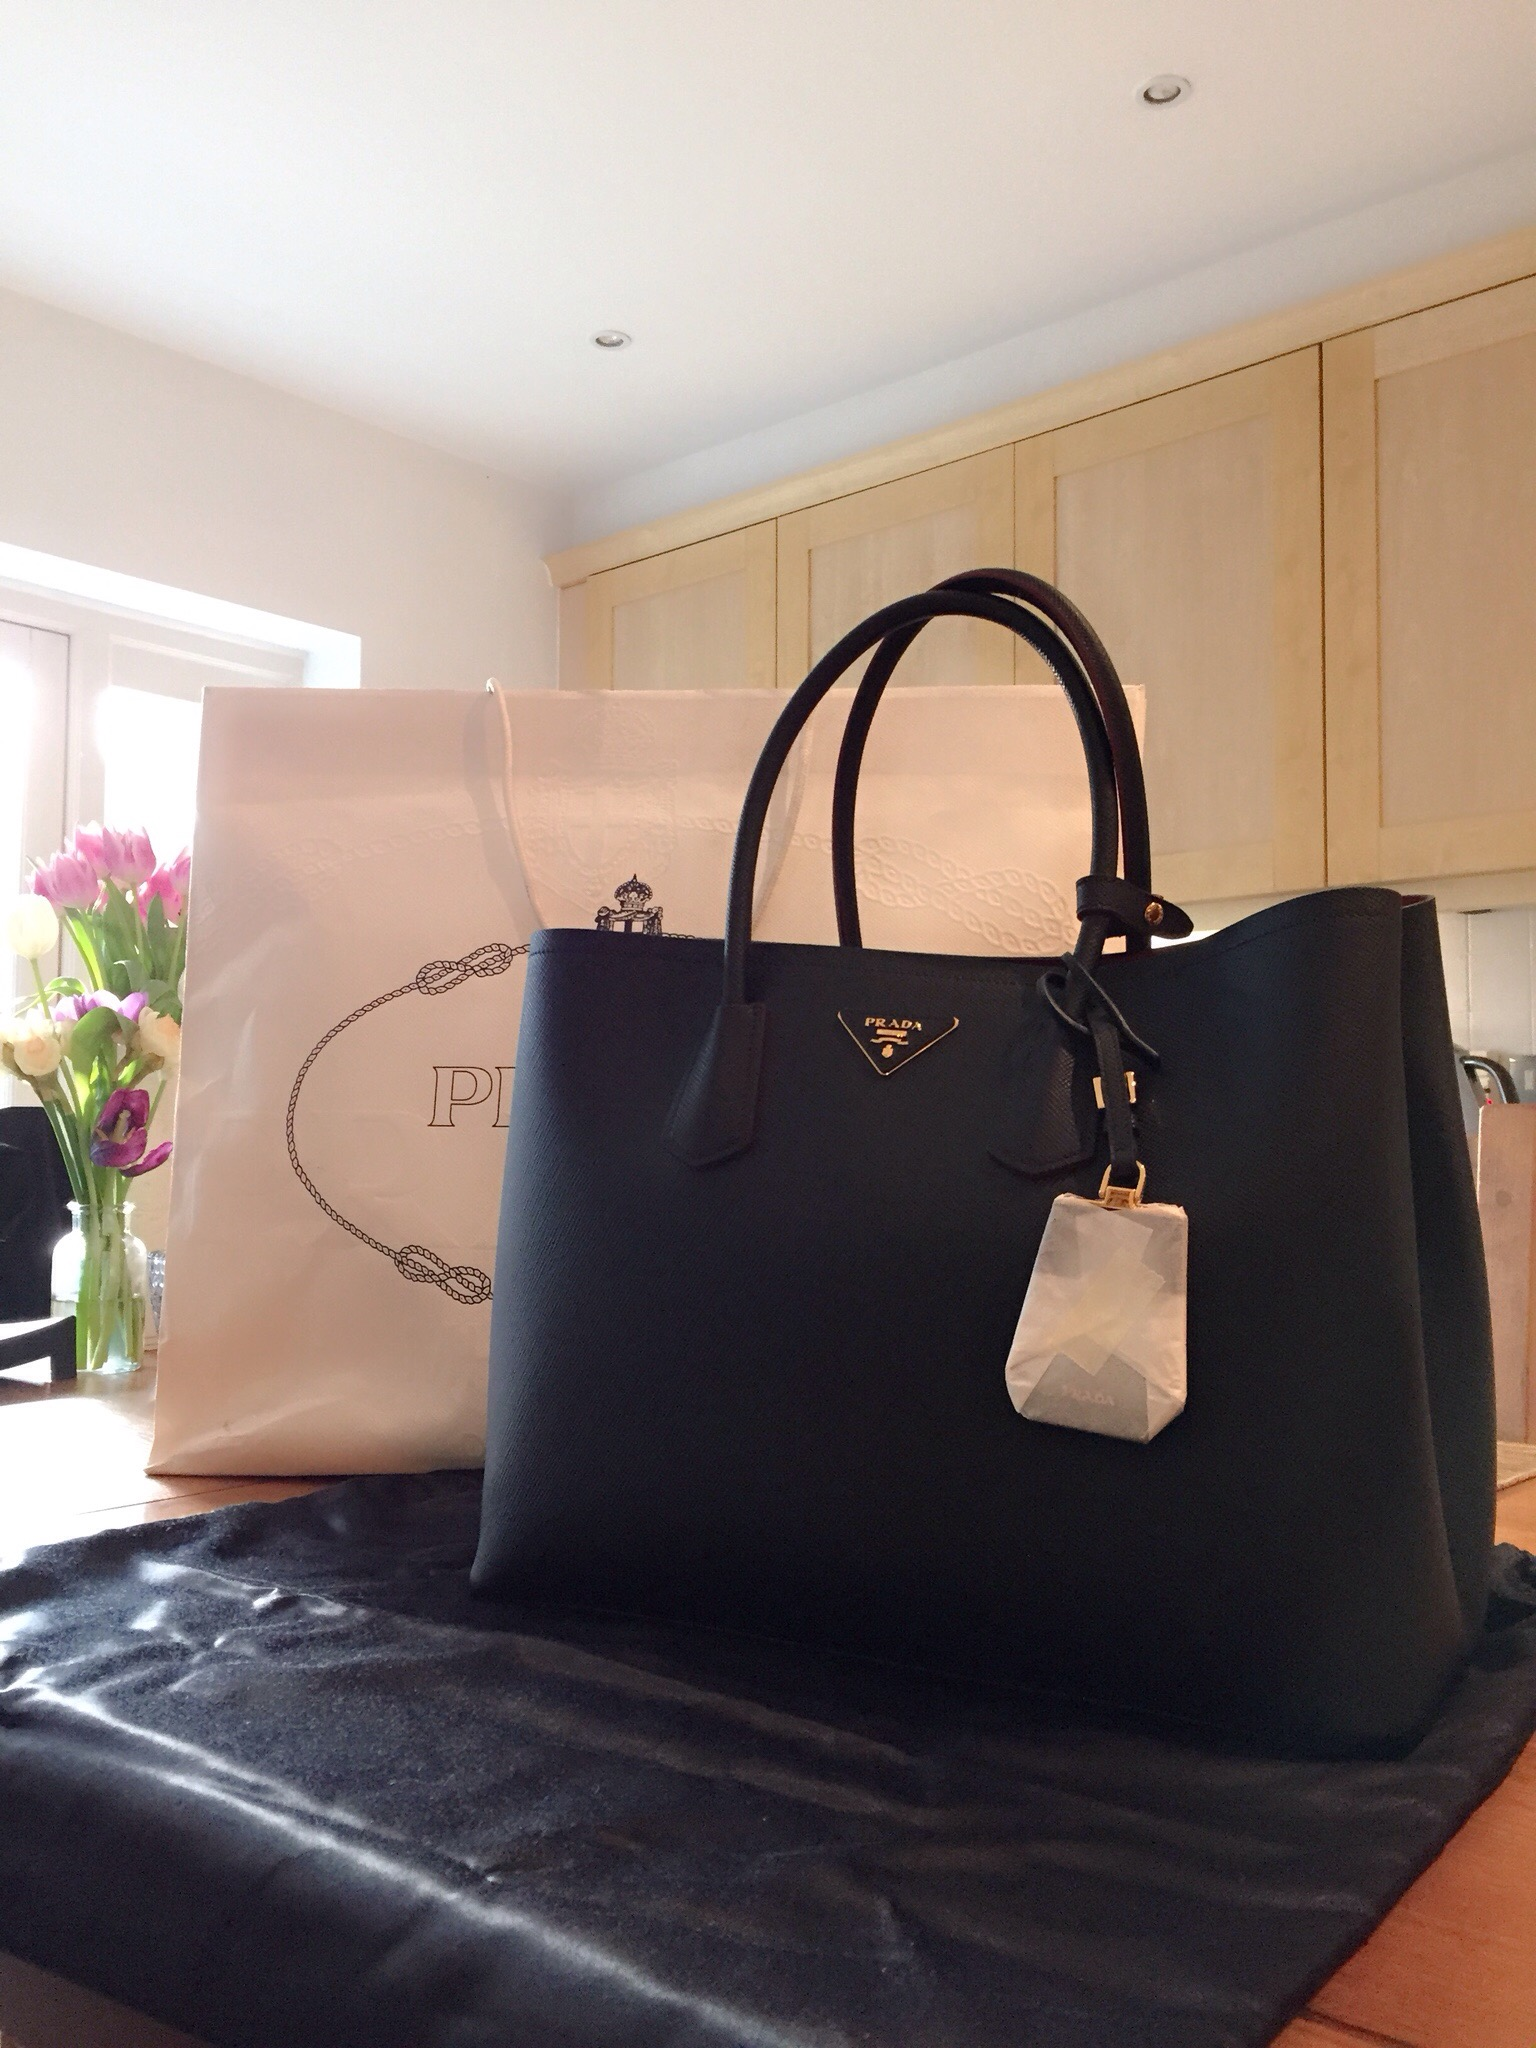 copy prada bags - Prada Double Bag: reveal and mini review - Vikky Anna